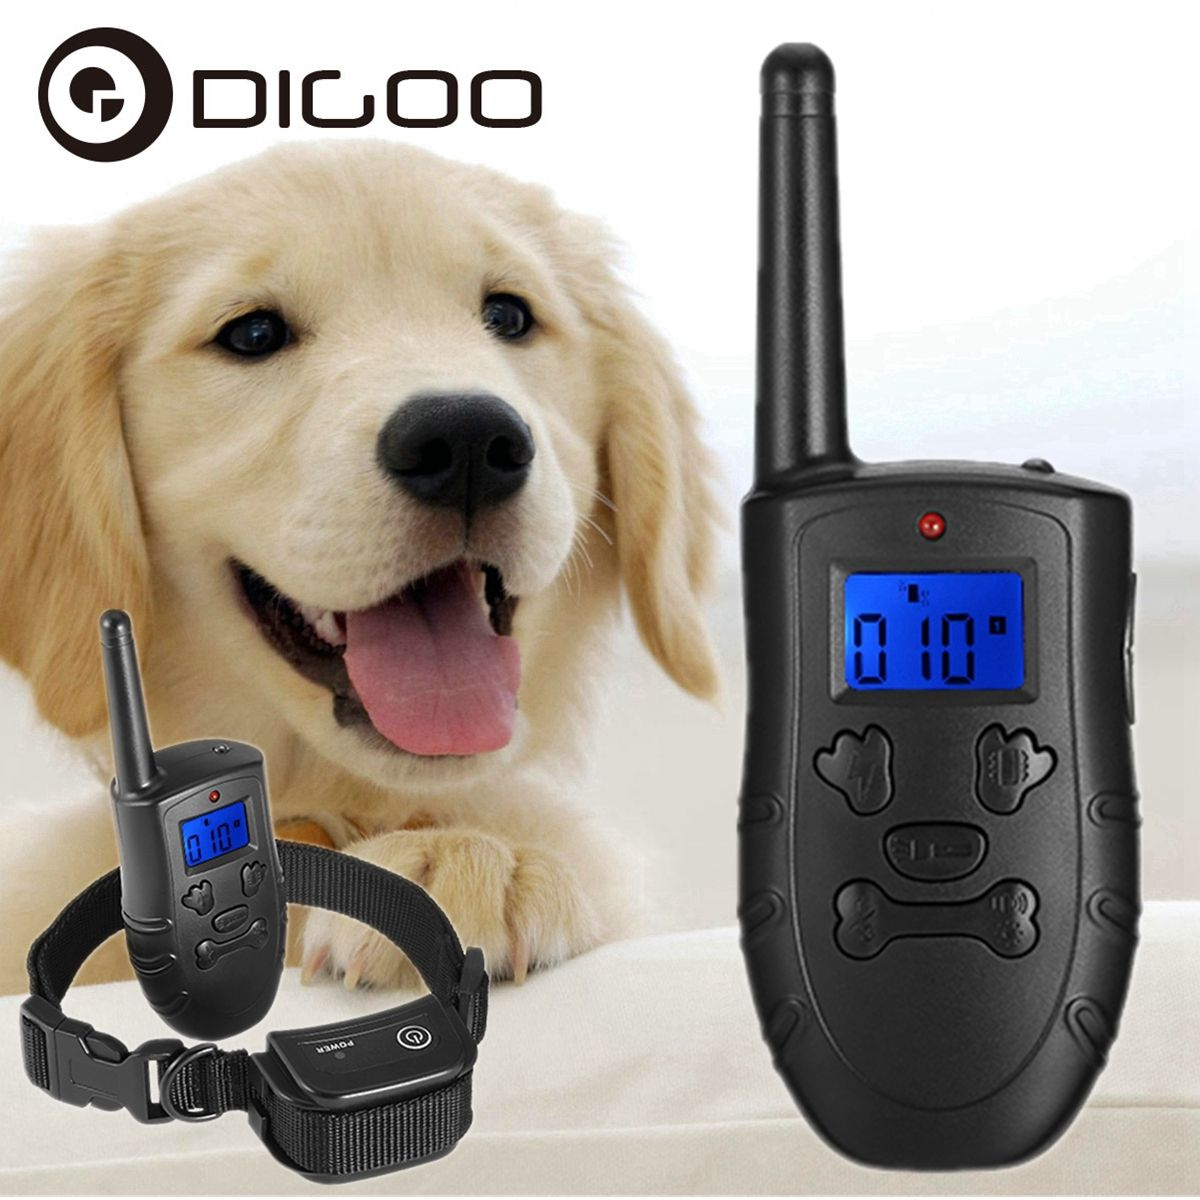 Digoo Dog Training Collar Rechargeable And Waterproof 330m Remote